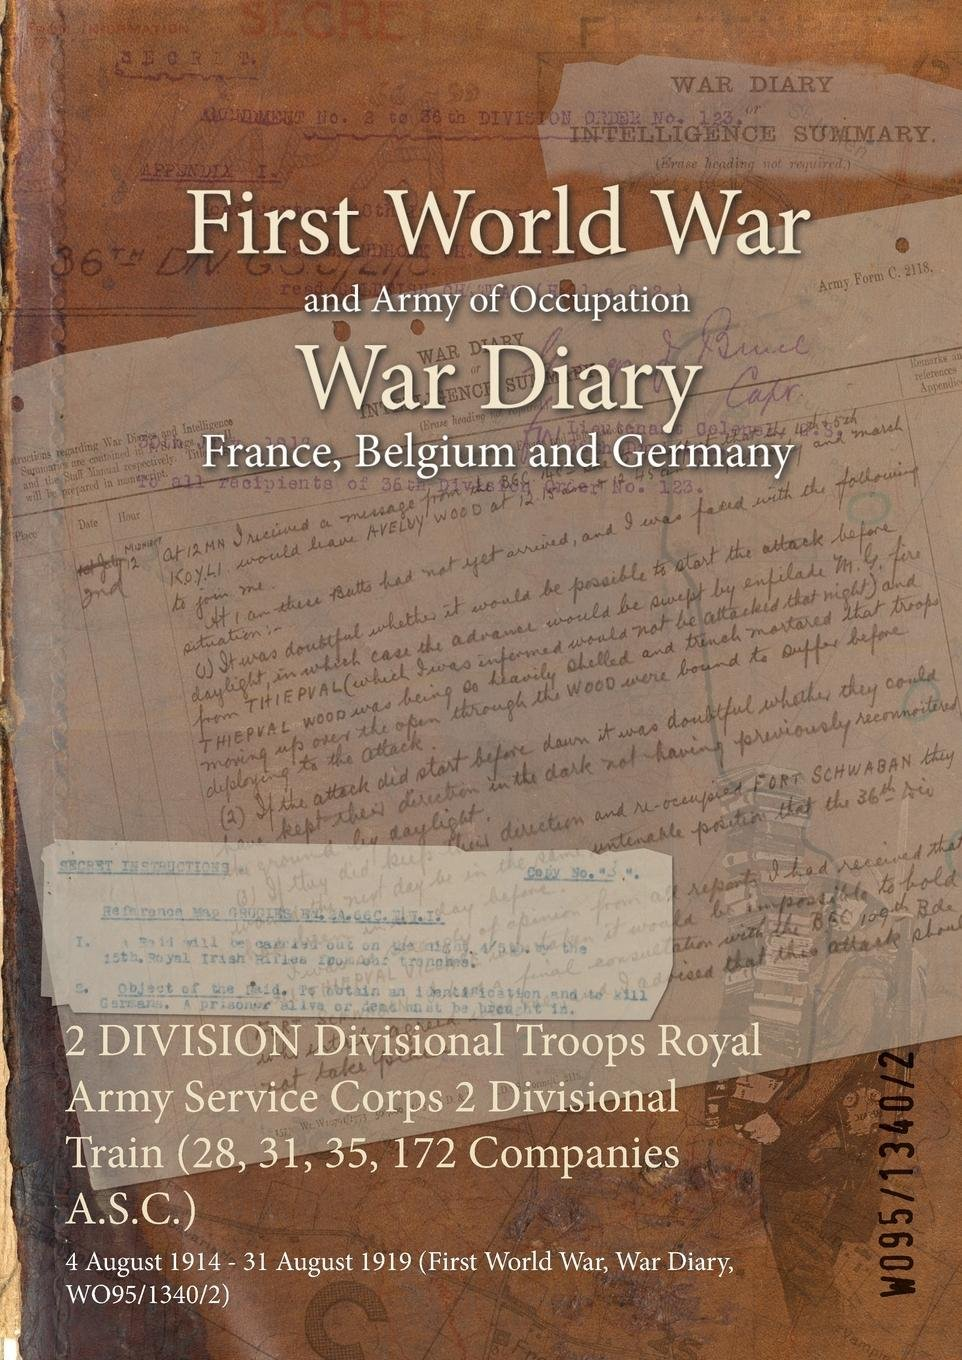 Download 2 Division Divisional Troops Royal Army Service Corps 2 Divisional Train (28, 31, 35, 172 Companies A.S.C.): 4 August 1914 - 31 August 1919 (First World War, War Diary, Wo95/1340/2) ebook